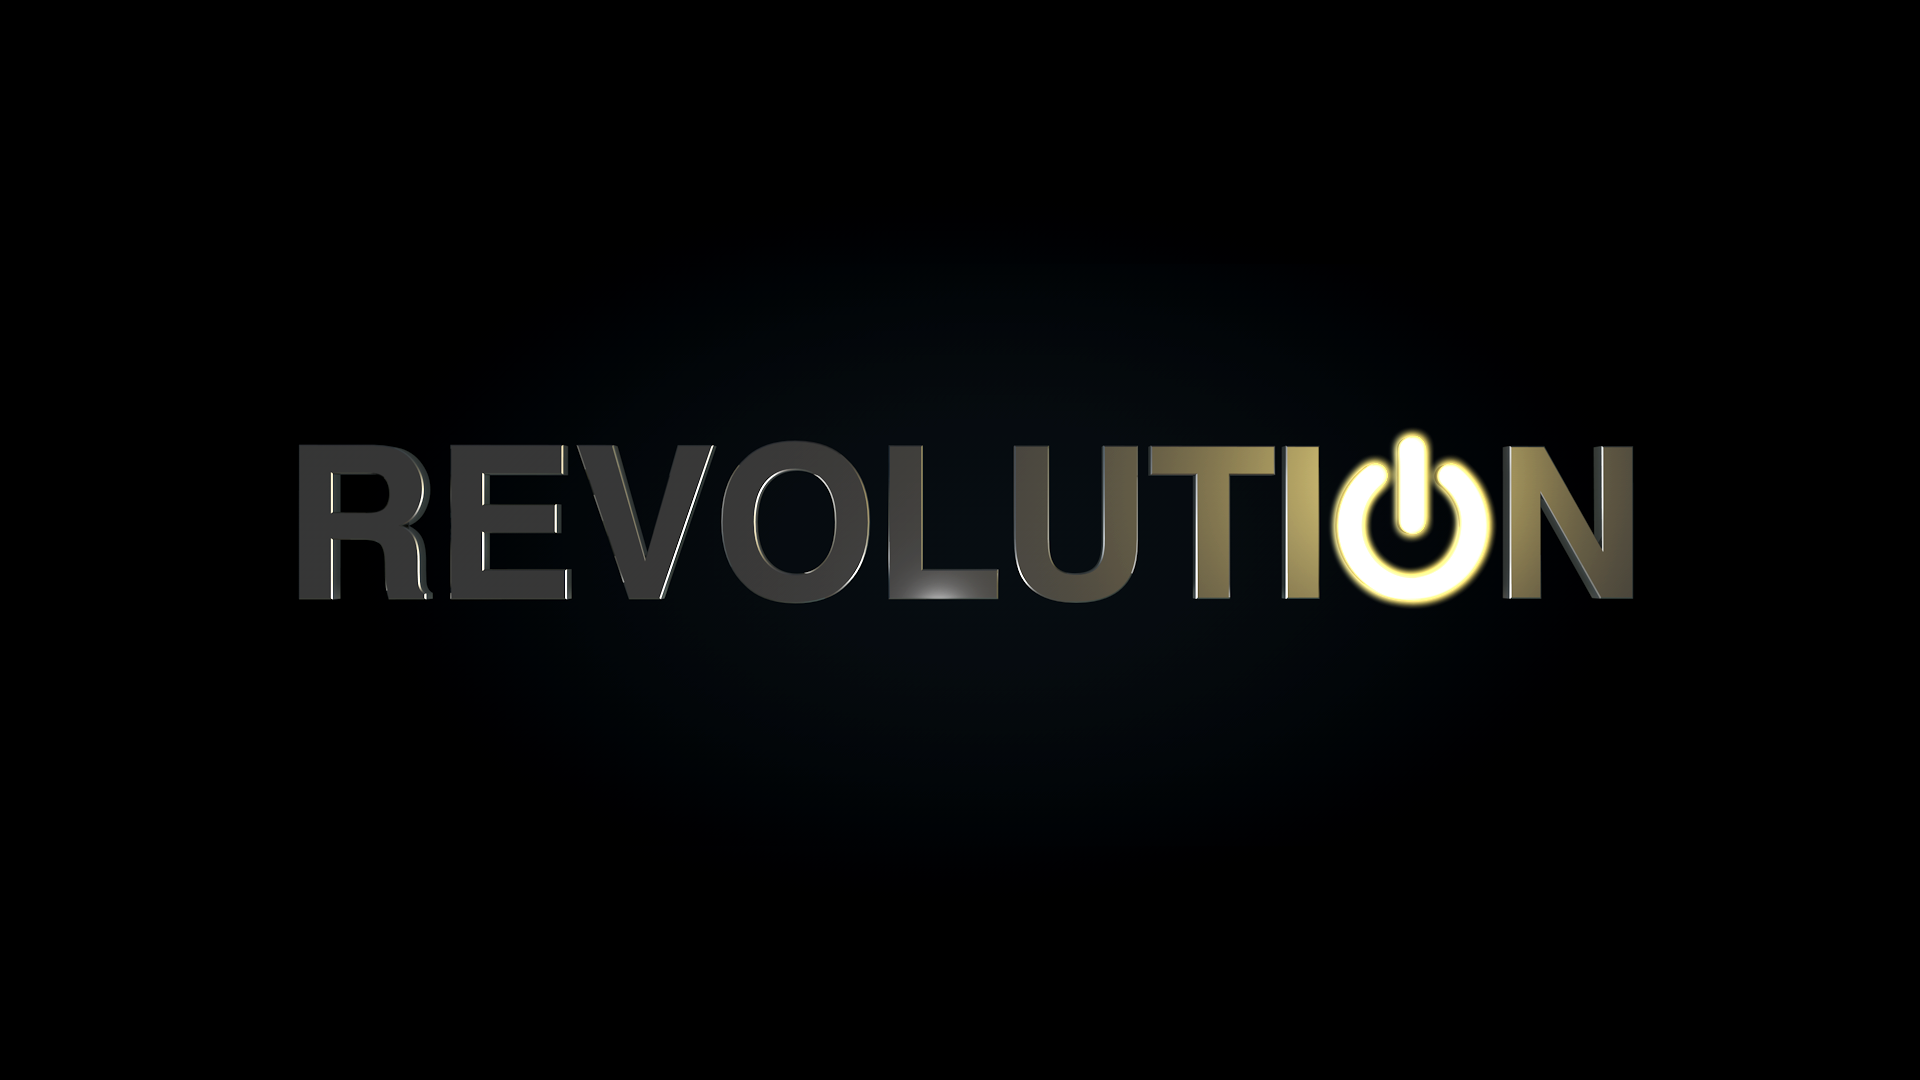 Revolution Wallpapers in 4K Ultra HD | 1920x1080 px, by Georgiana Vanmeter